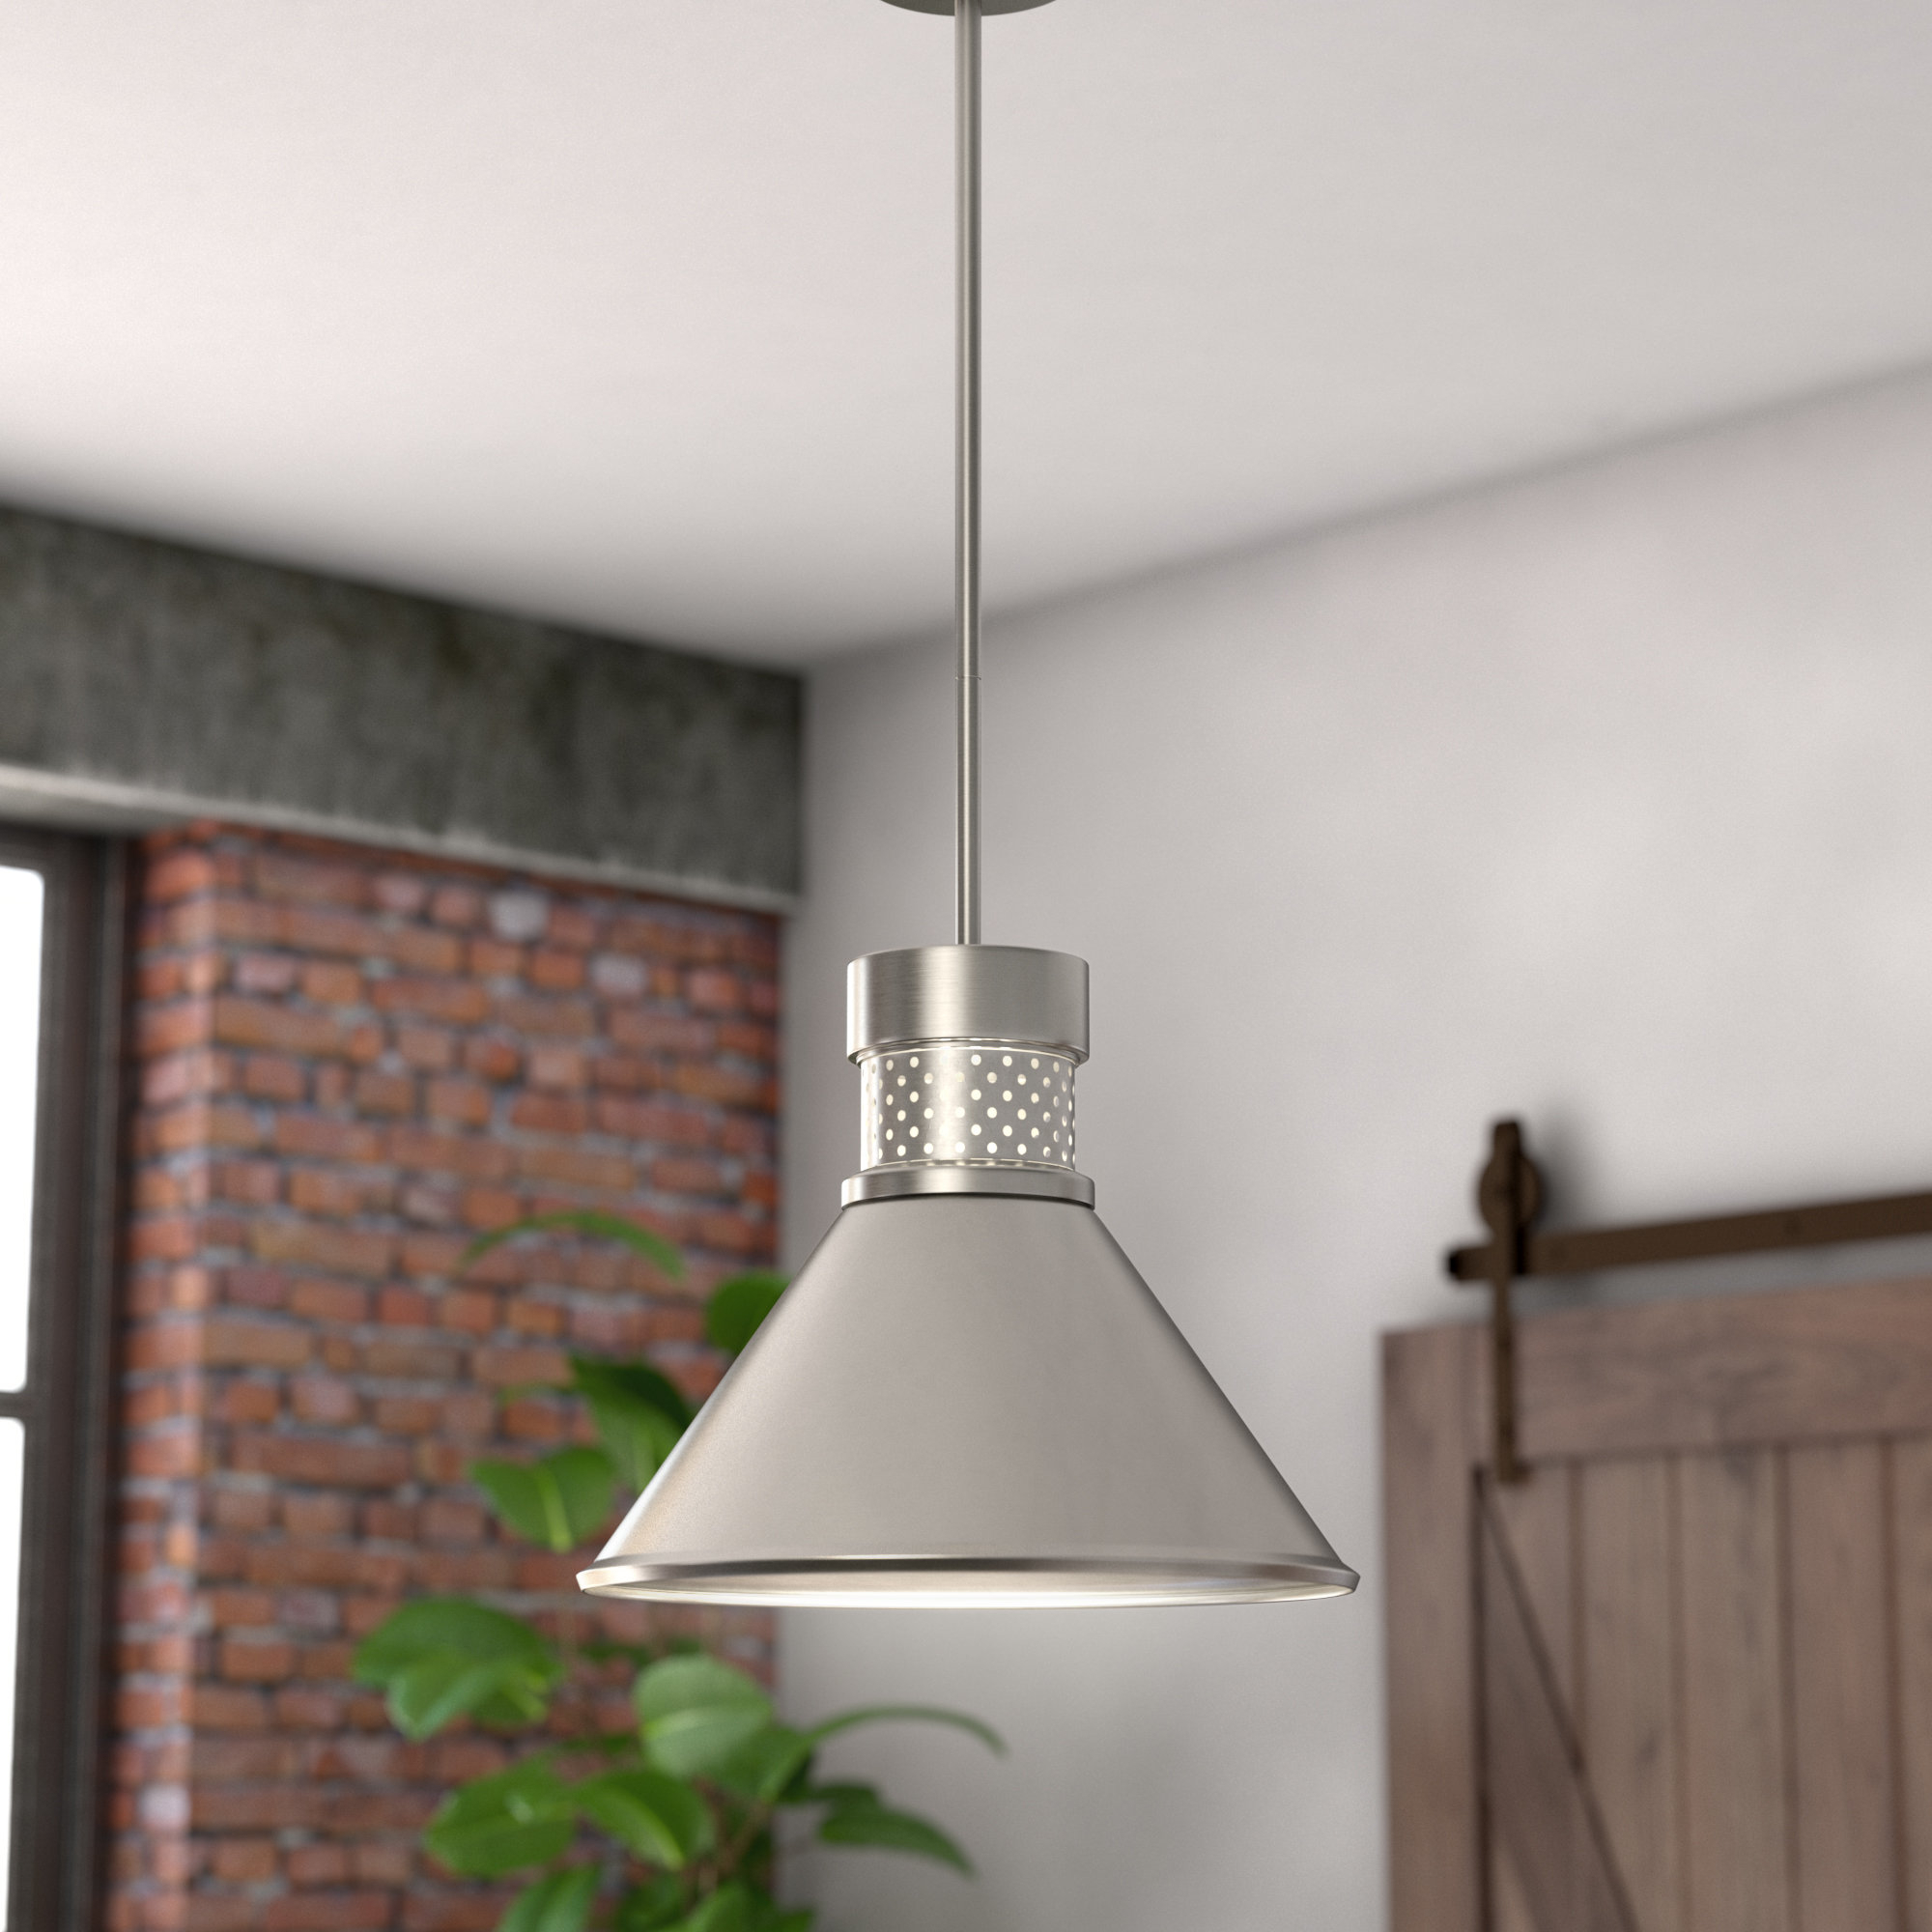 Wayfair Regarding Widely Used Guro 1 Light Cone Pendants (View 6 of 25)